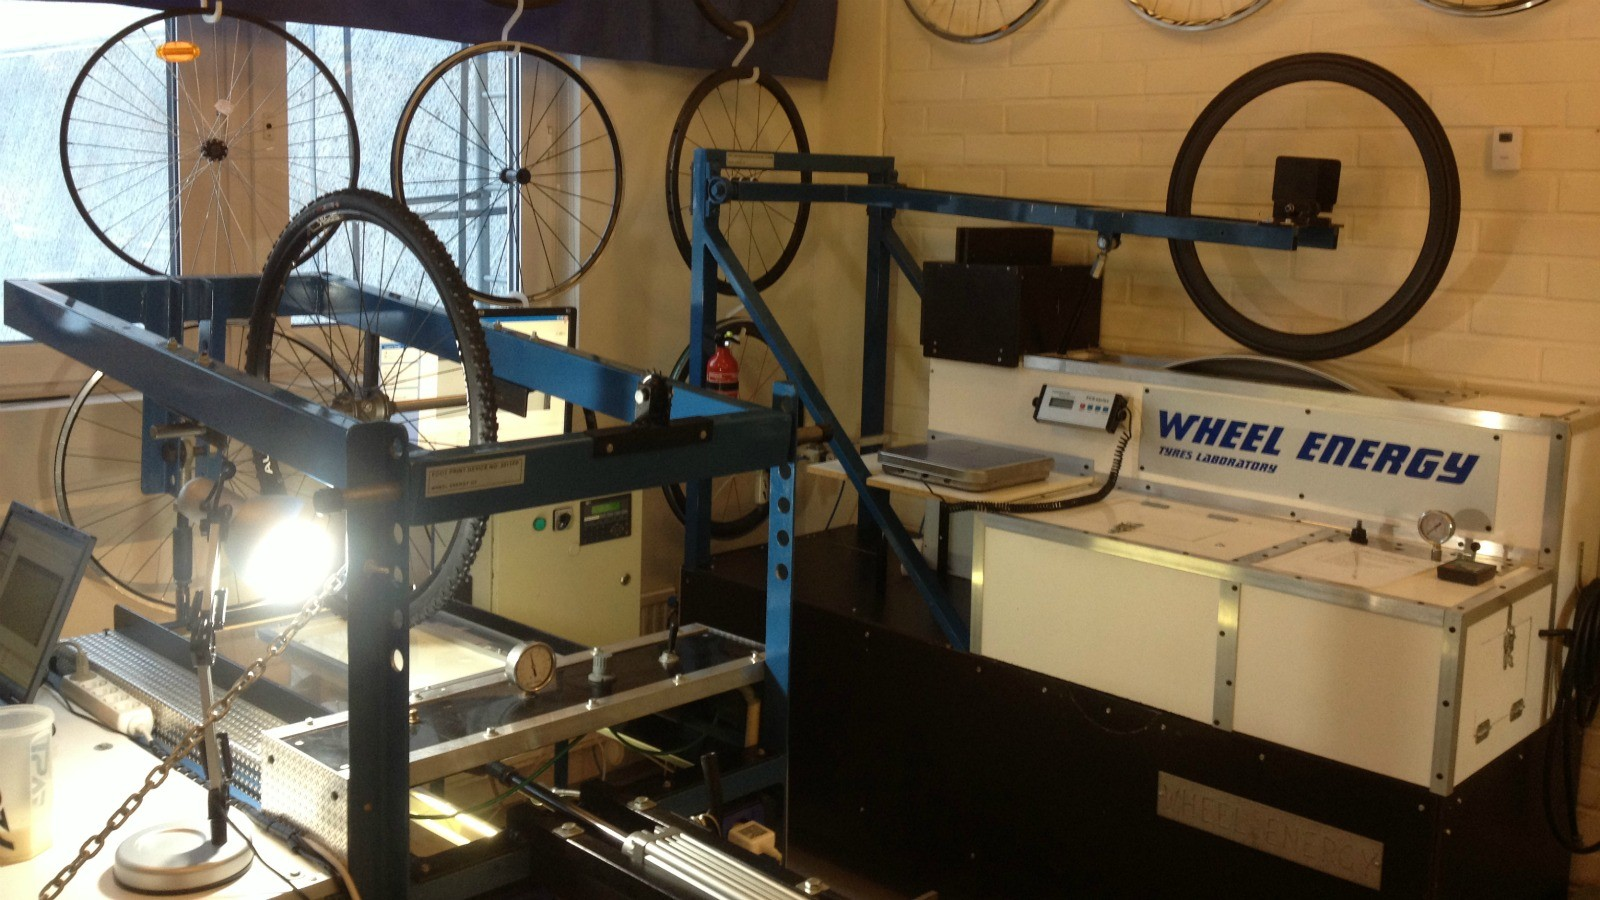 Our videographer Joe has been in Finland to visit the tyre gurus at Wheel Energy Lab